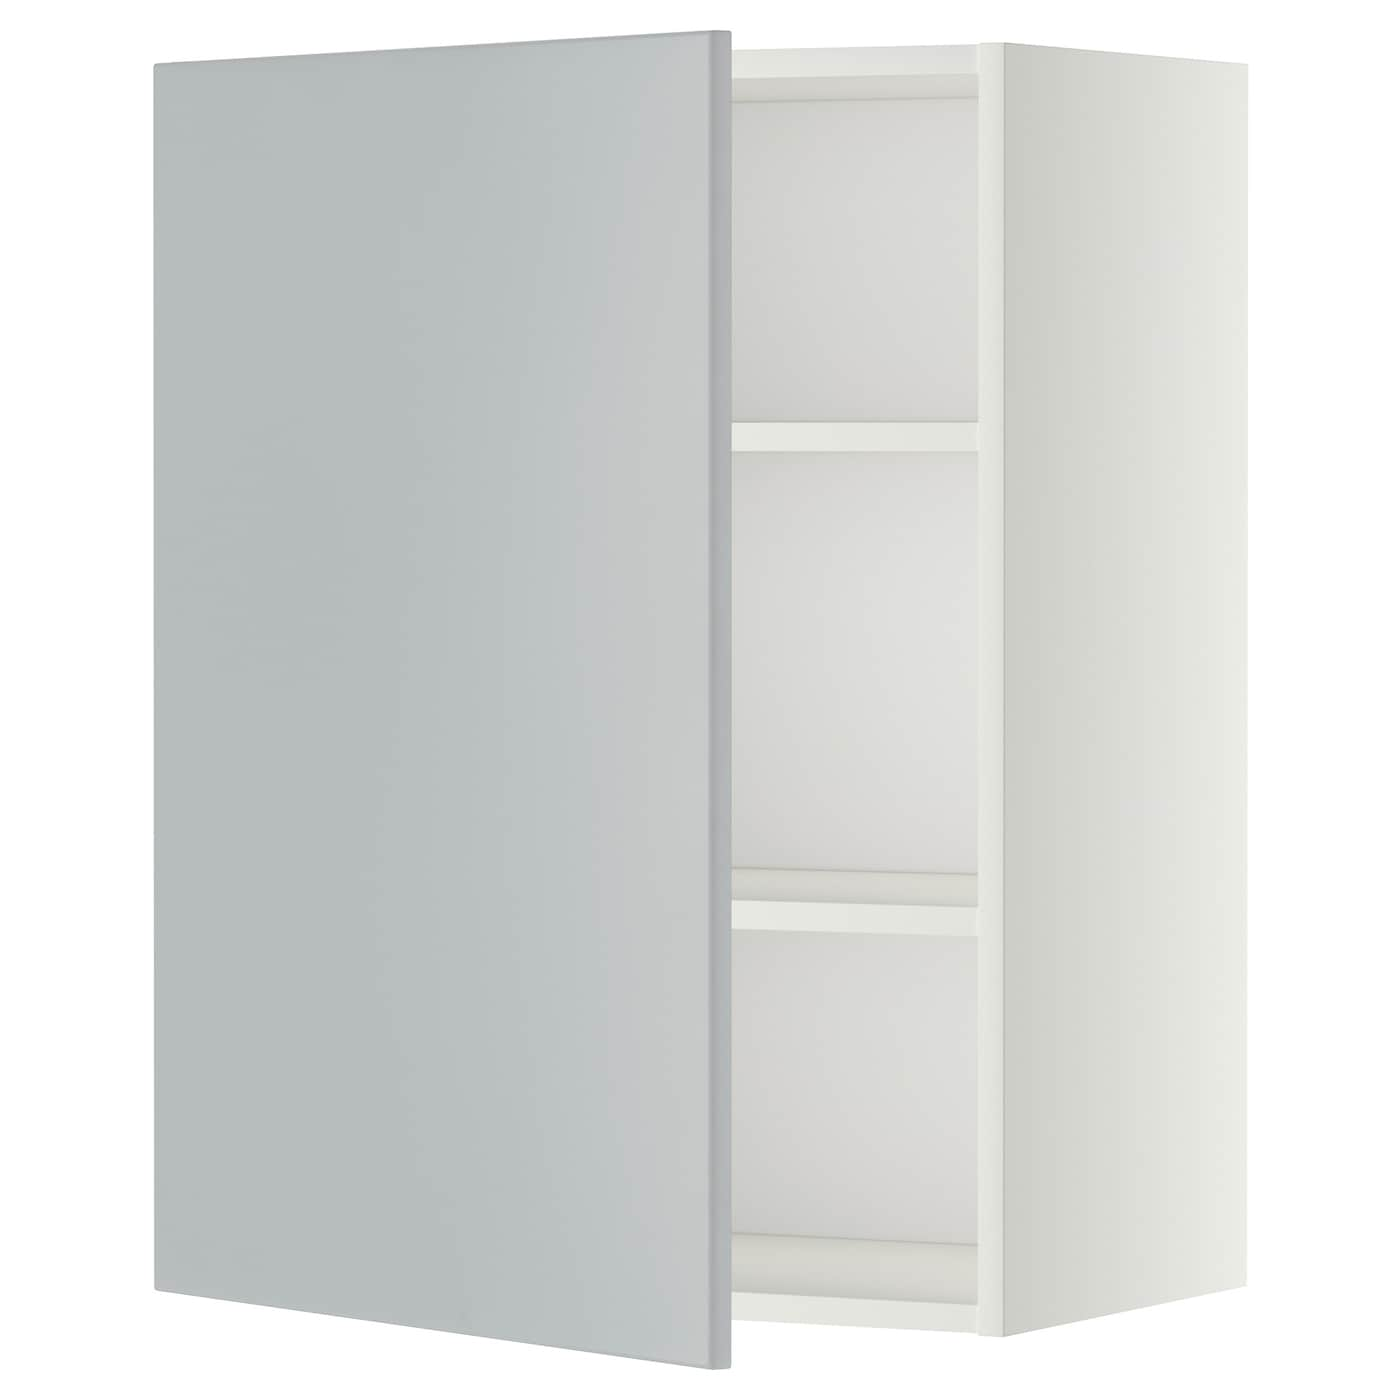 metod wall cabinet with shelves white veddinge grey 60x80 cm ikea. Black Bedroom Furniture Sets. Home Design Ideas